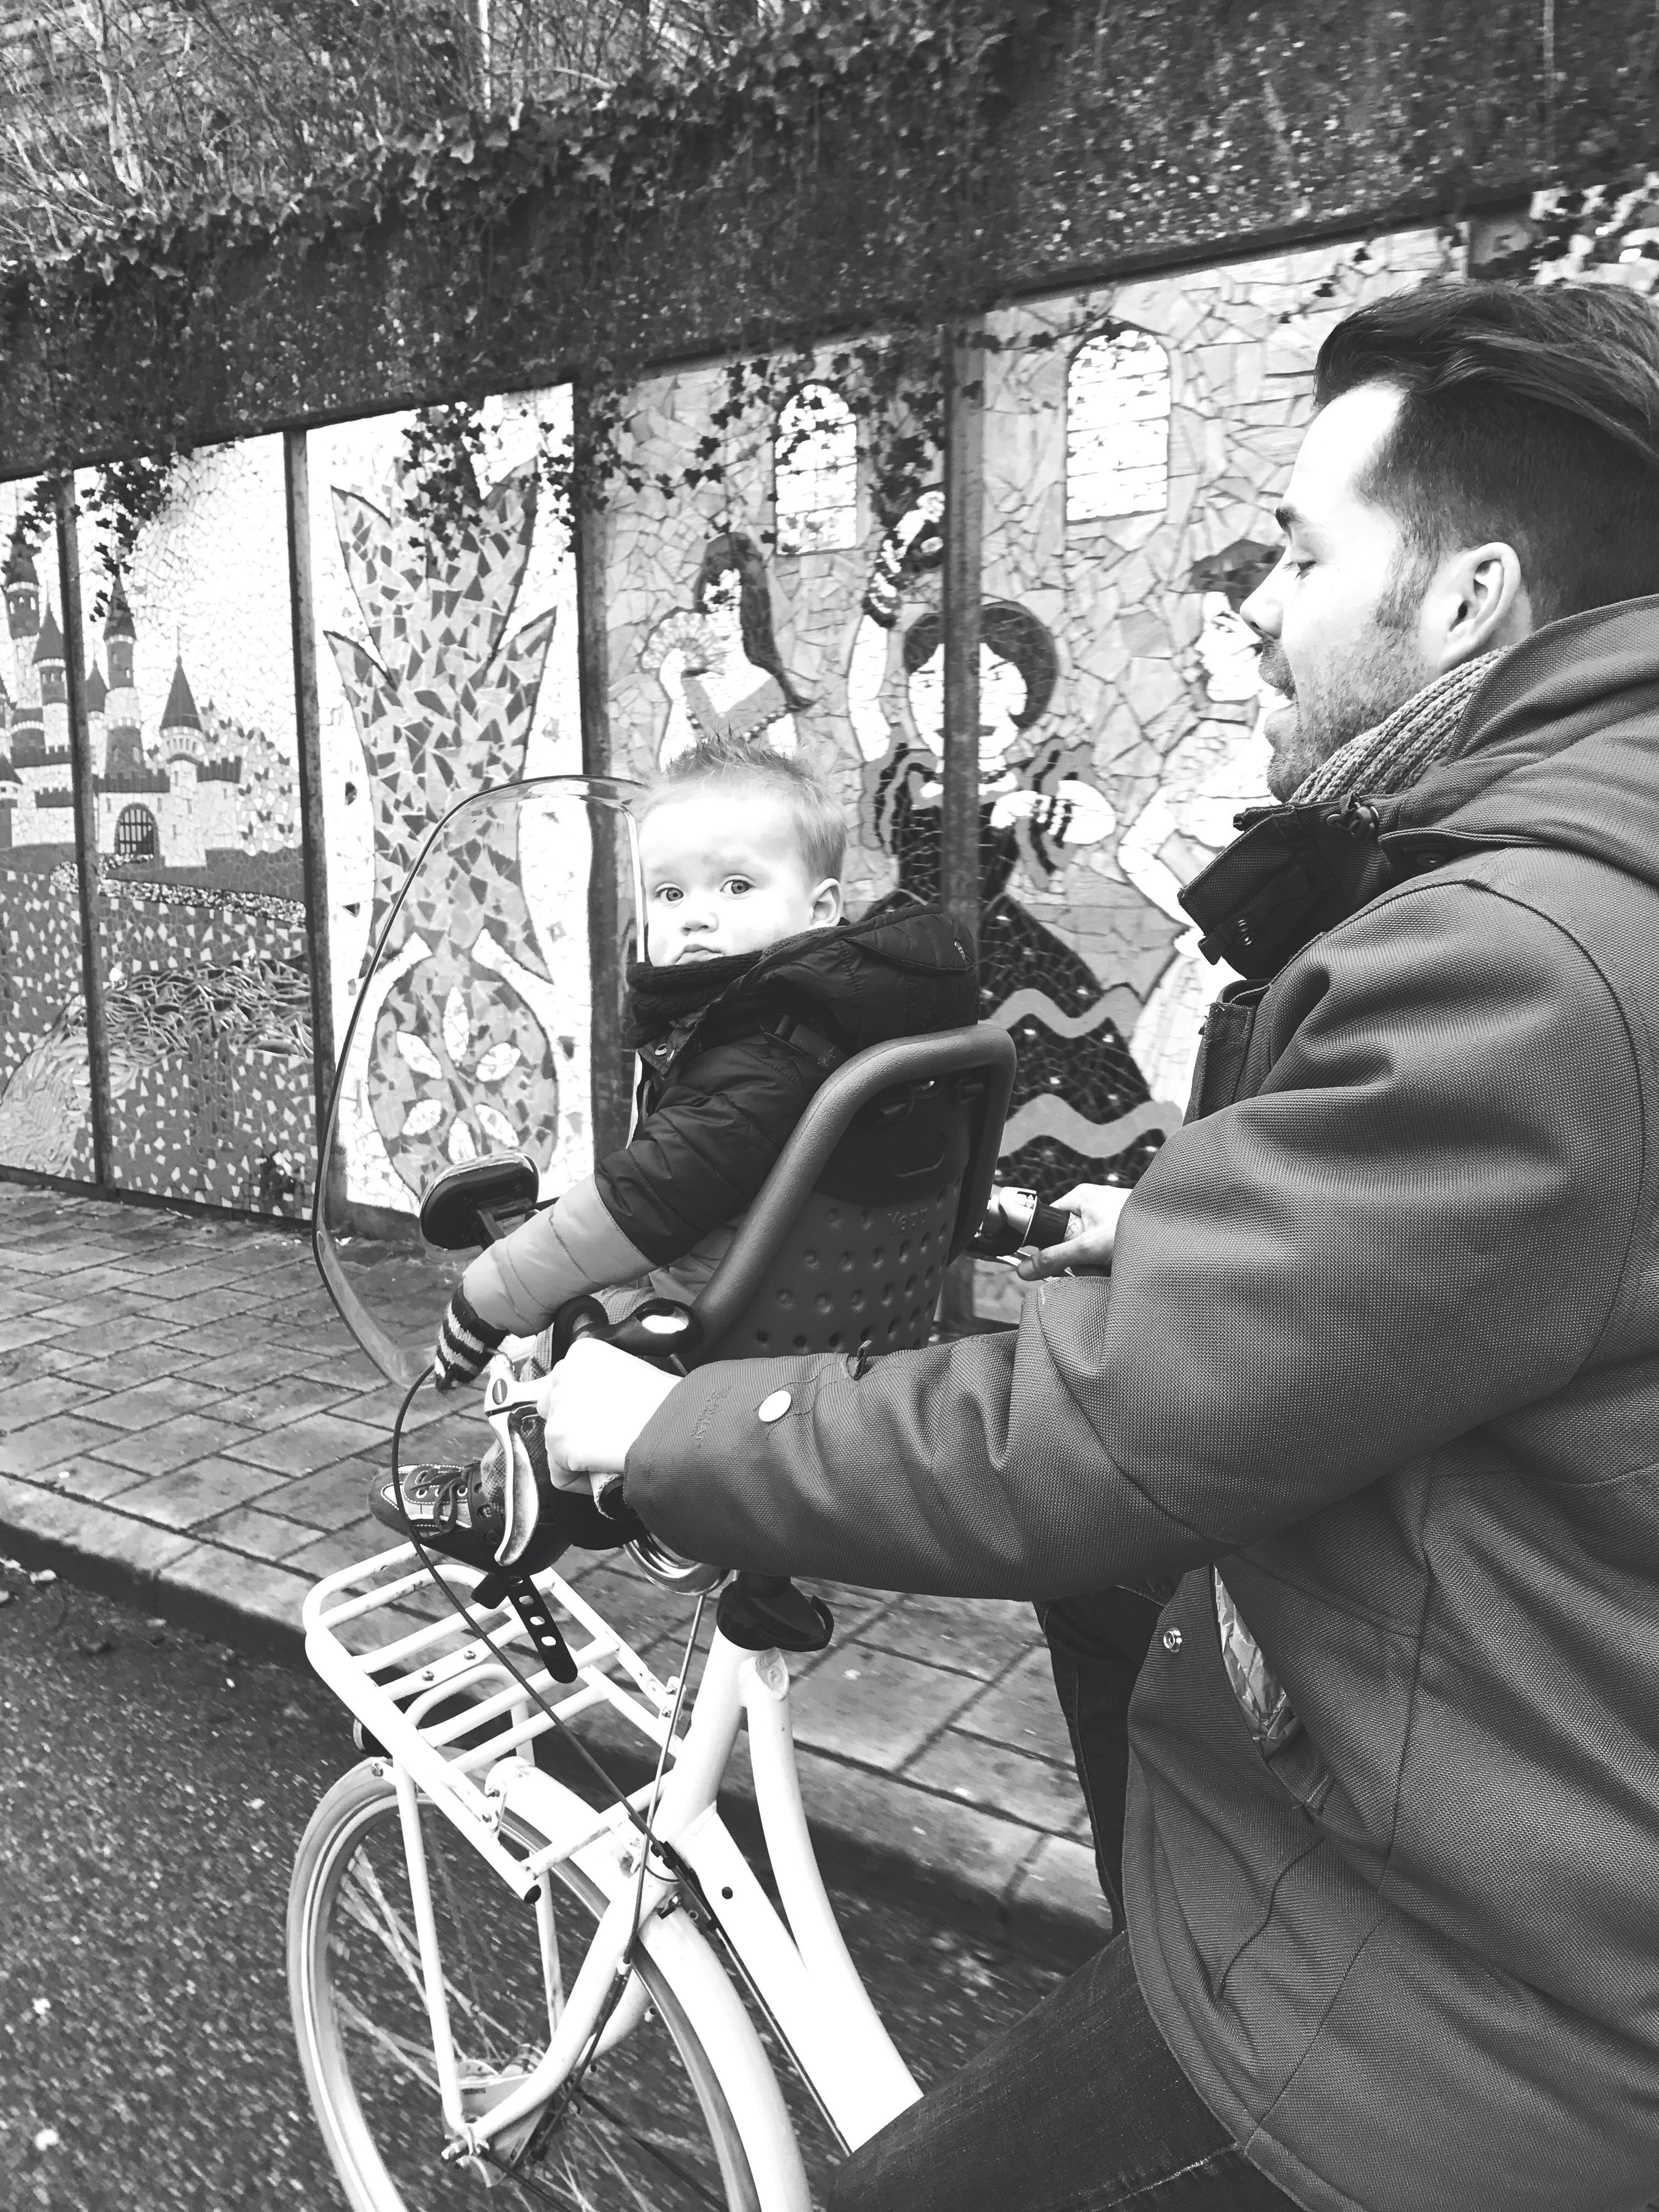 bicycle, two people, young men, leisure activity, real people, adults only, mode of transport, lifestyles, transportation, young women, young adult, beard, day, men, cycling, only men, people, adult, outdoors, togetherness